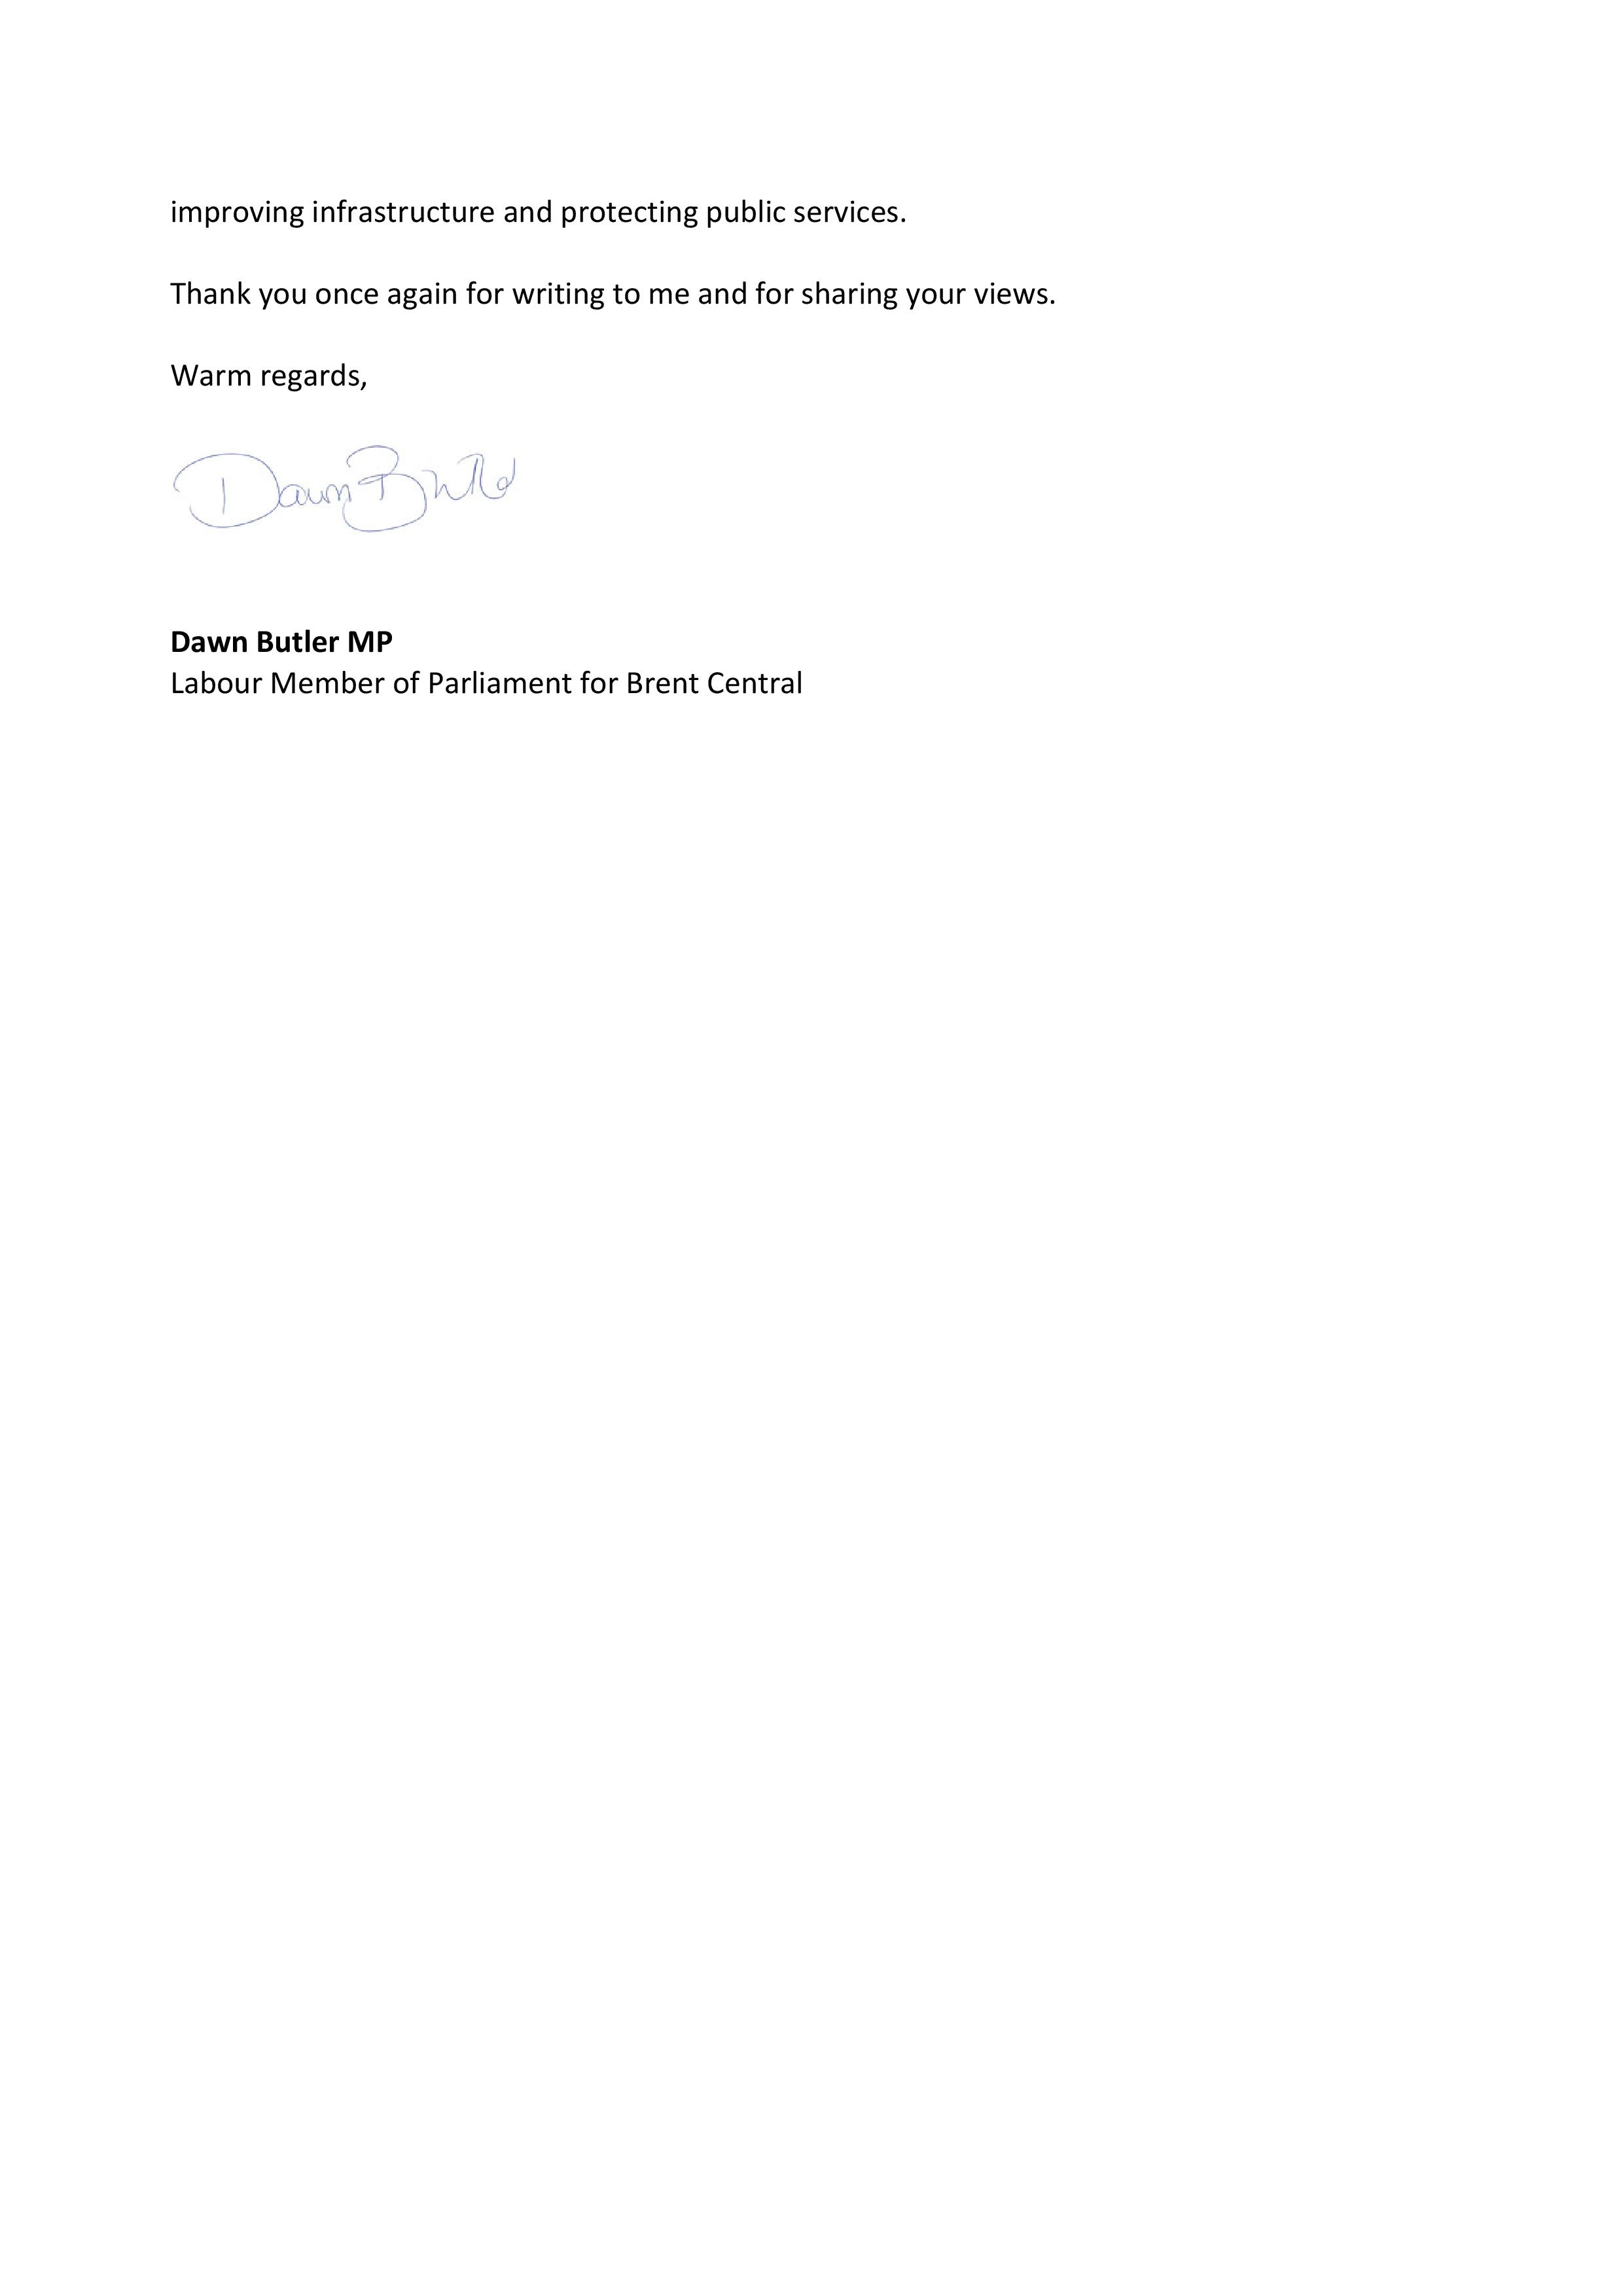 fox_letter-page-002.jpg